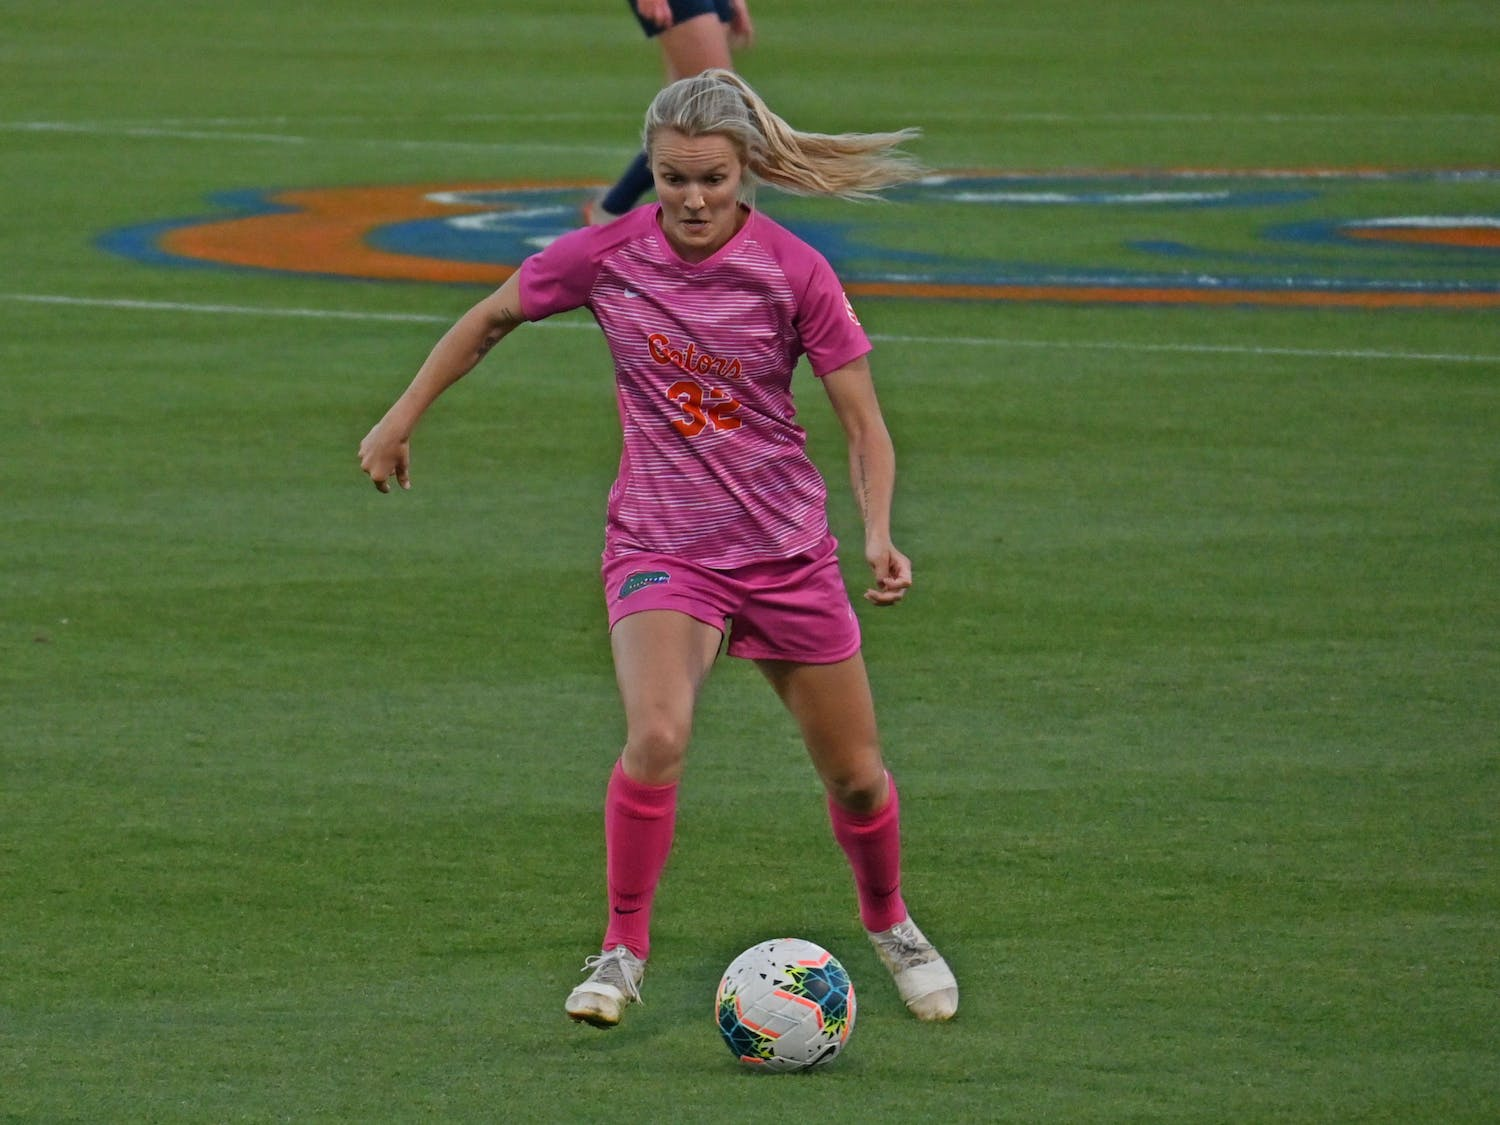 UF outshot the Tigers, 6-4 in the first and 7-4 in the second in both halves. Photo from UF-Georgia Southern game March 11.